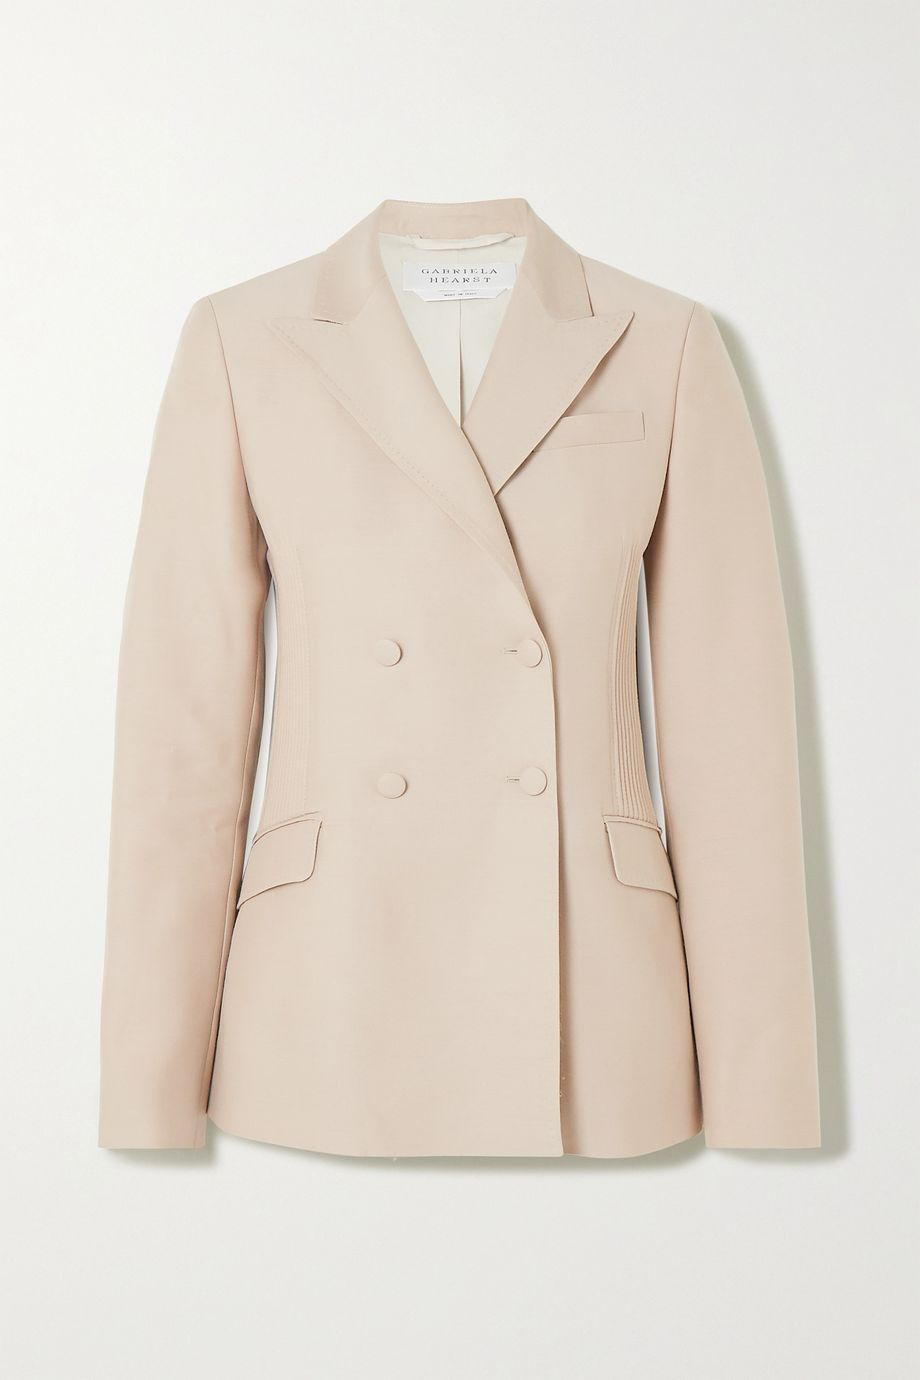 Gabriela Hearst Joaquin double-breasted pintucked wool and silk-blend blazer